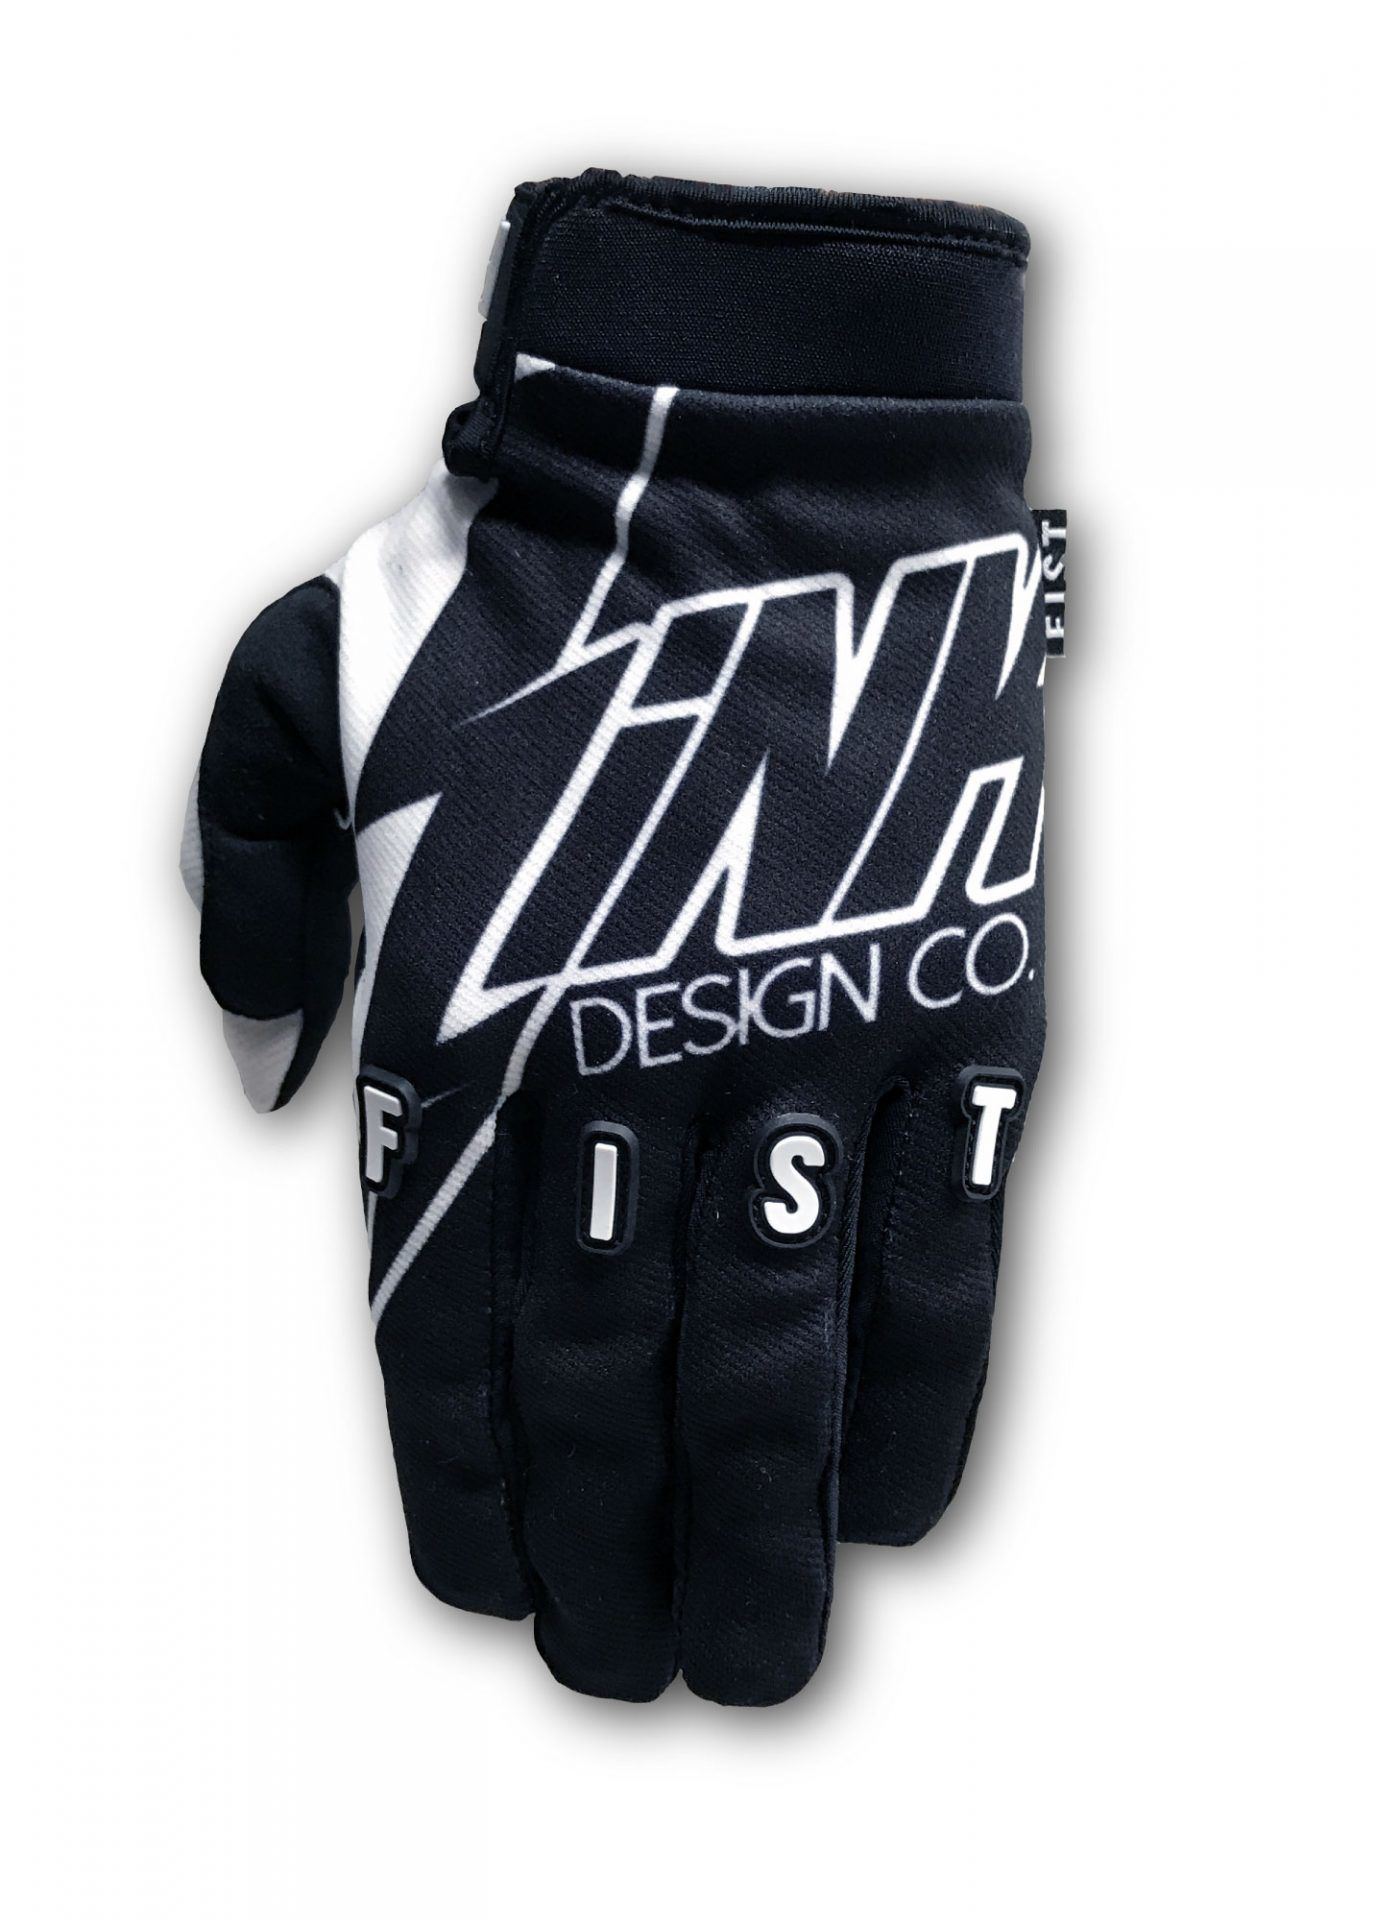 Rival Fist Gloves 2 0 Rival Ink Design Co